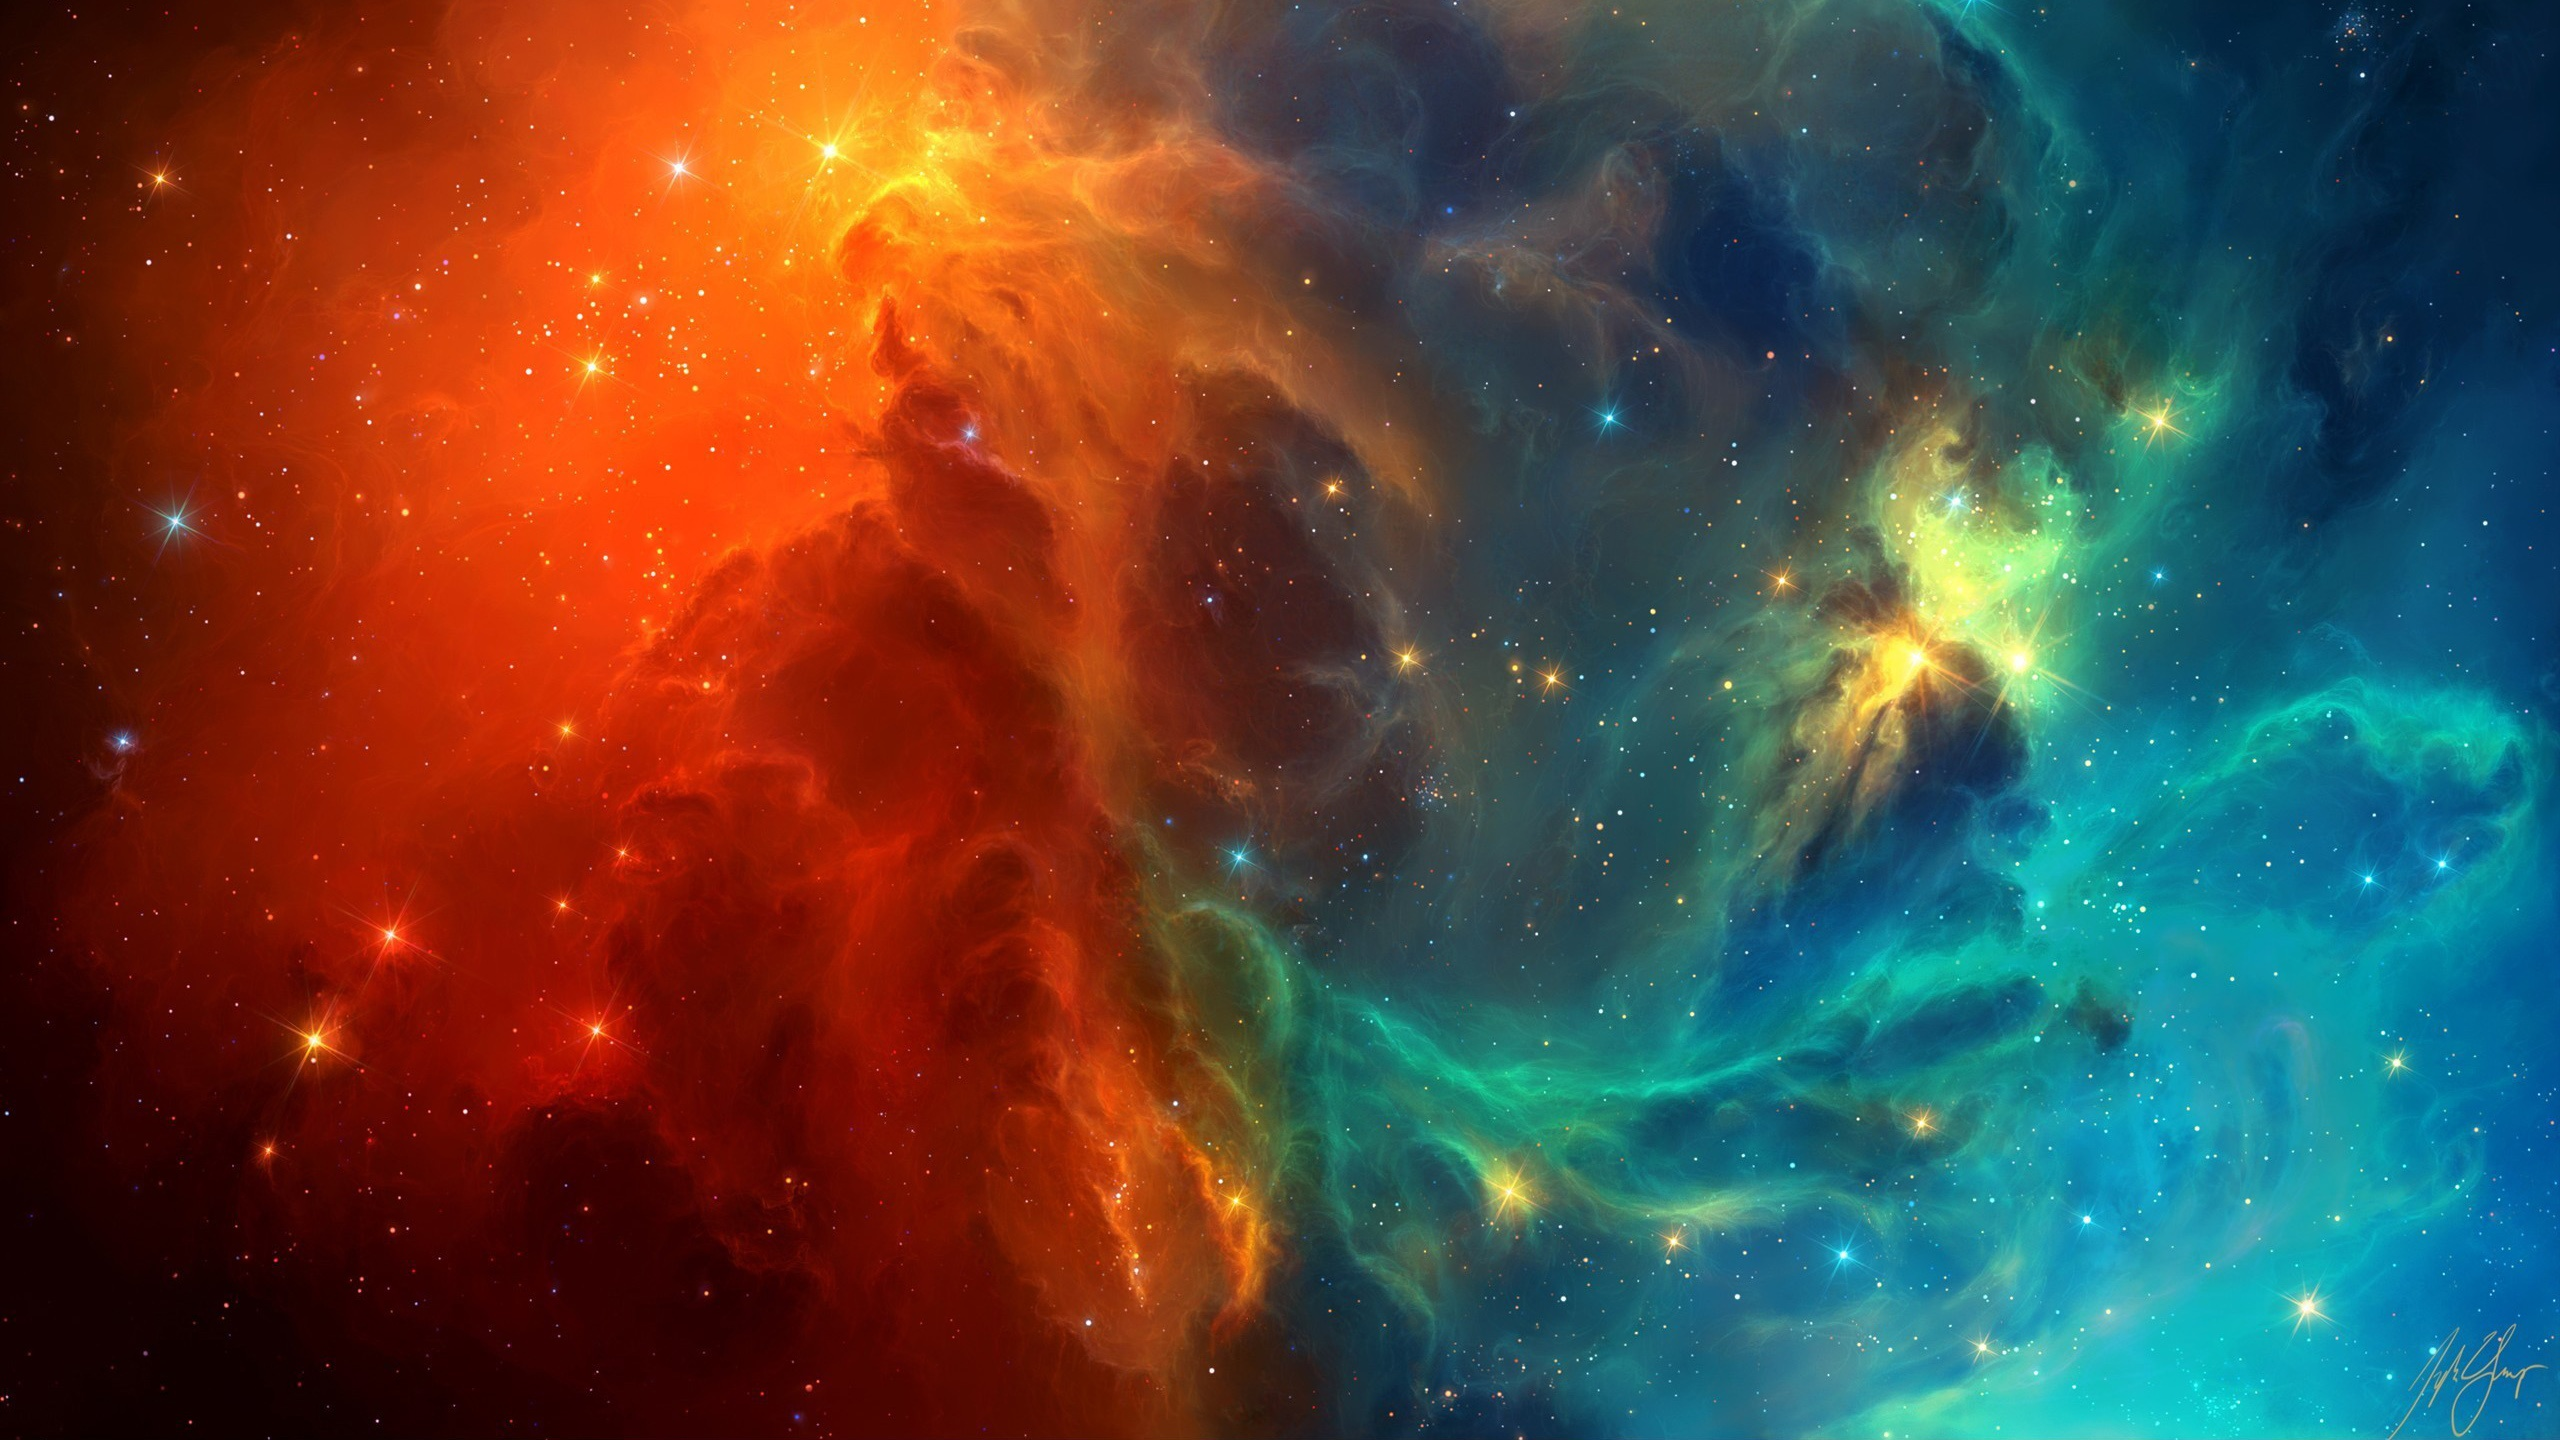 Wallpaper space nebula blue and red galaxies 2560x1440 - Space 2560 x 1440 ...